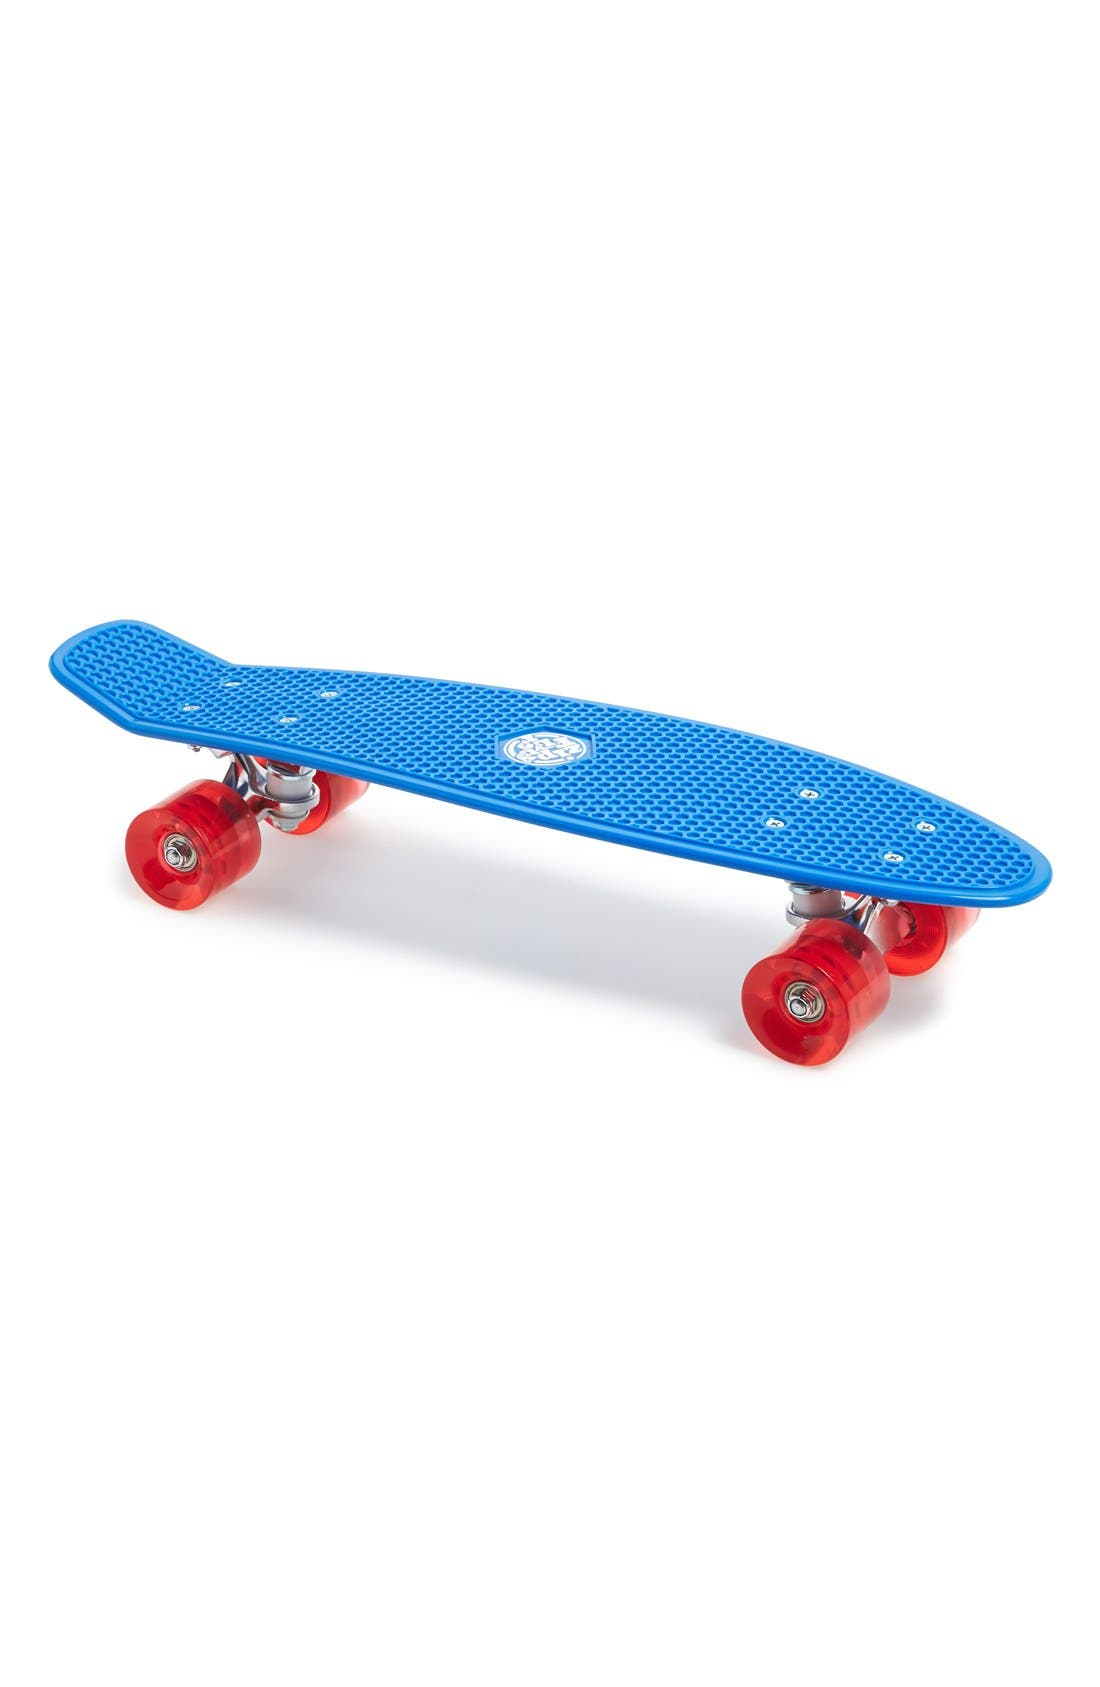 Main Image - Zippy Flyer Skateboard